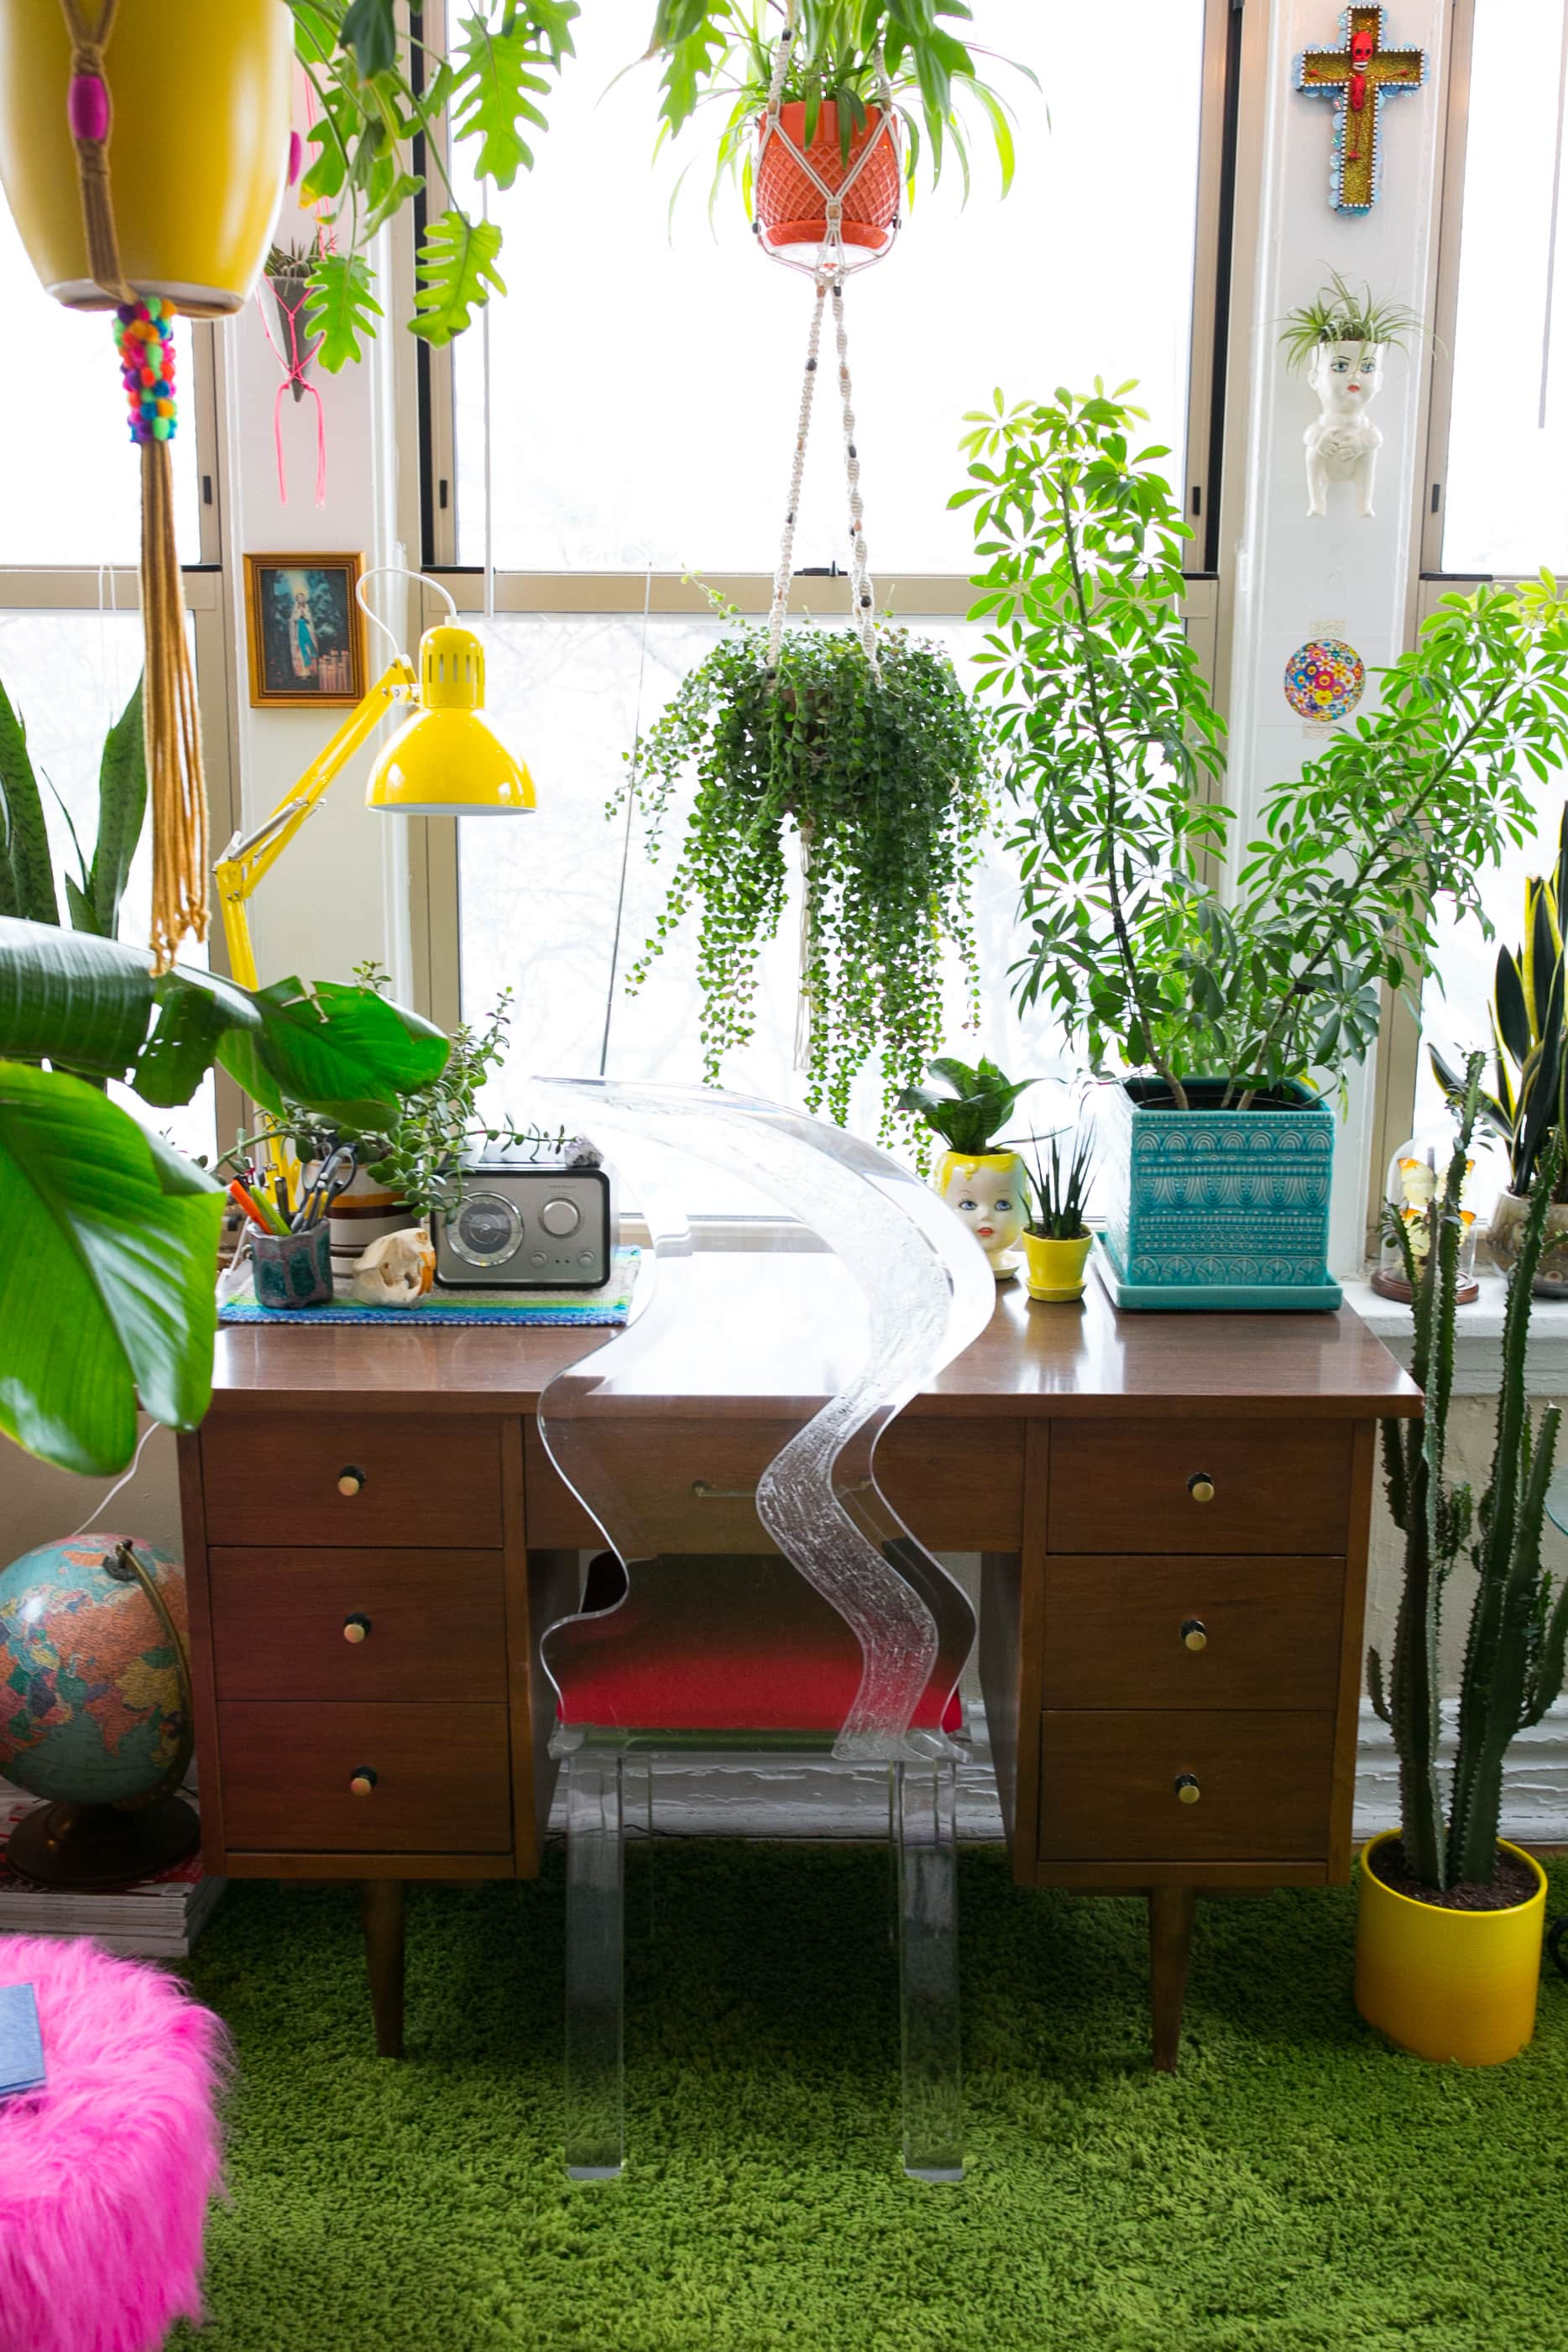 Hanging Plants - Best Indoor Types, Ideas | Apartment Therapy